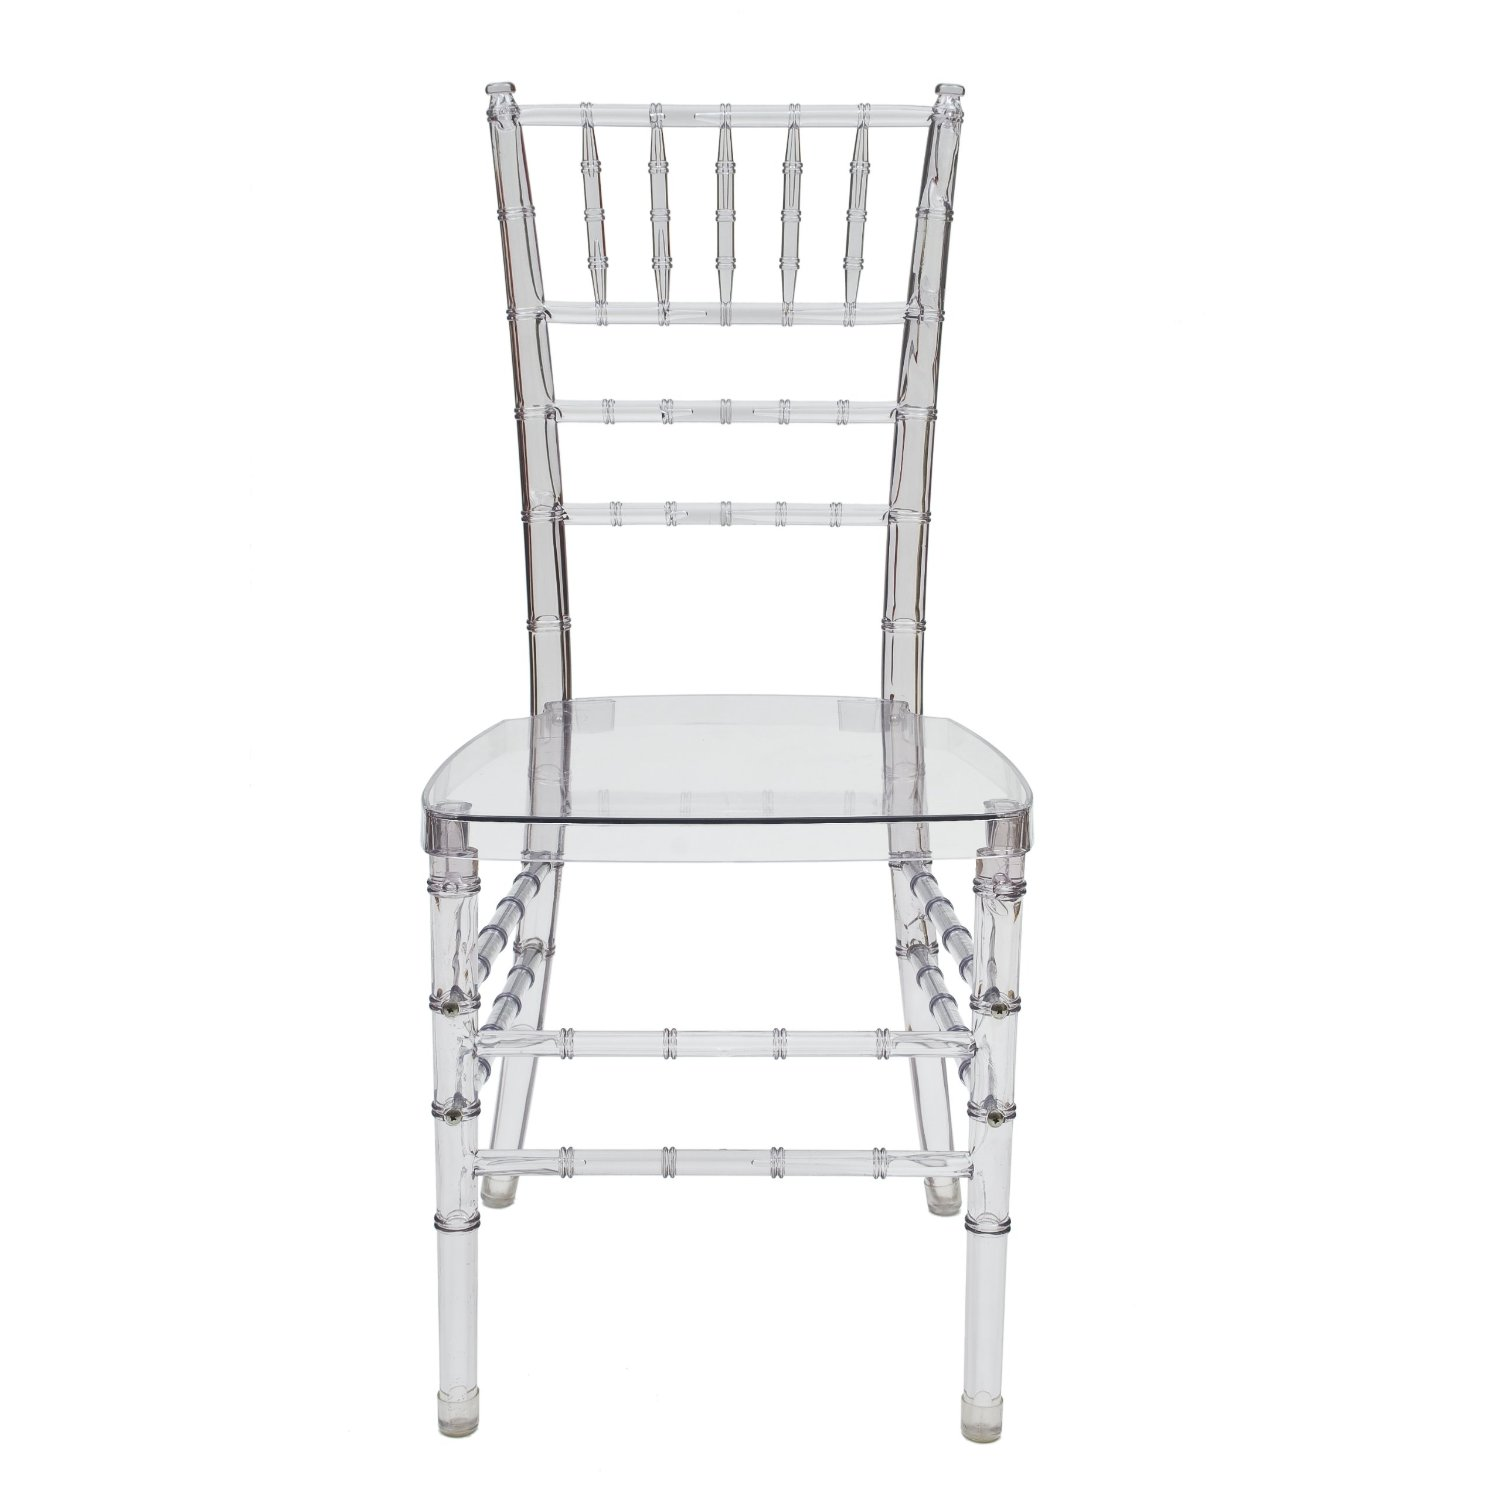 chair bend central all oregon natural rentals chiavari serving of chivari chairs wood event